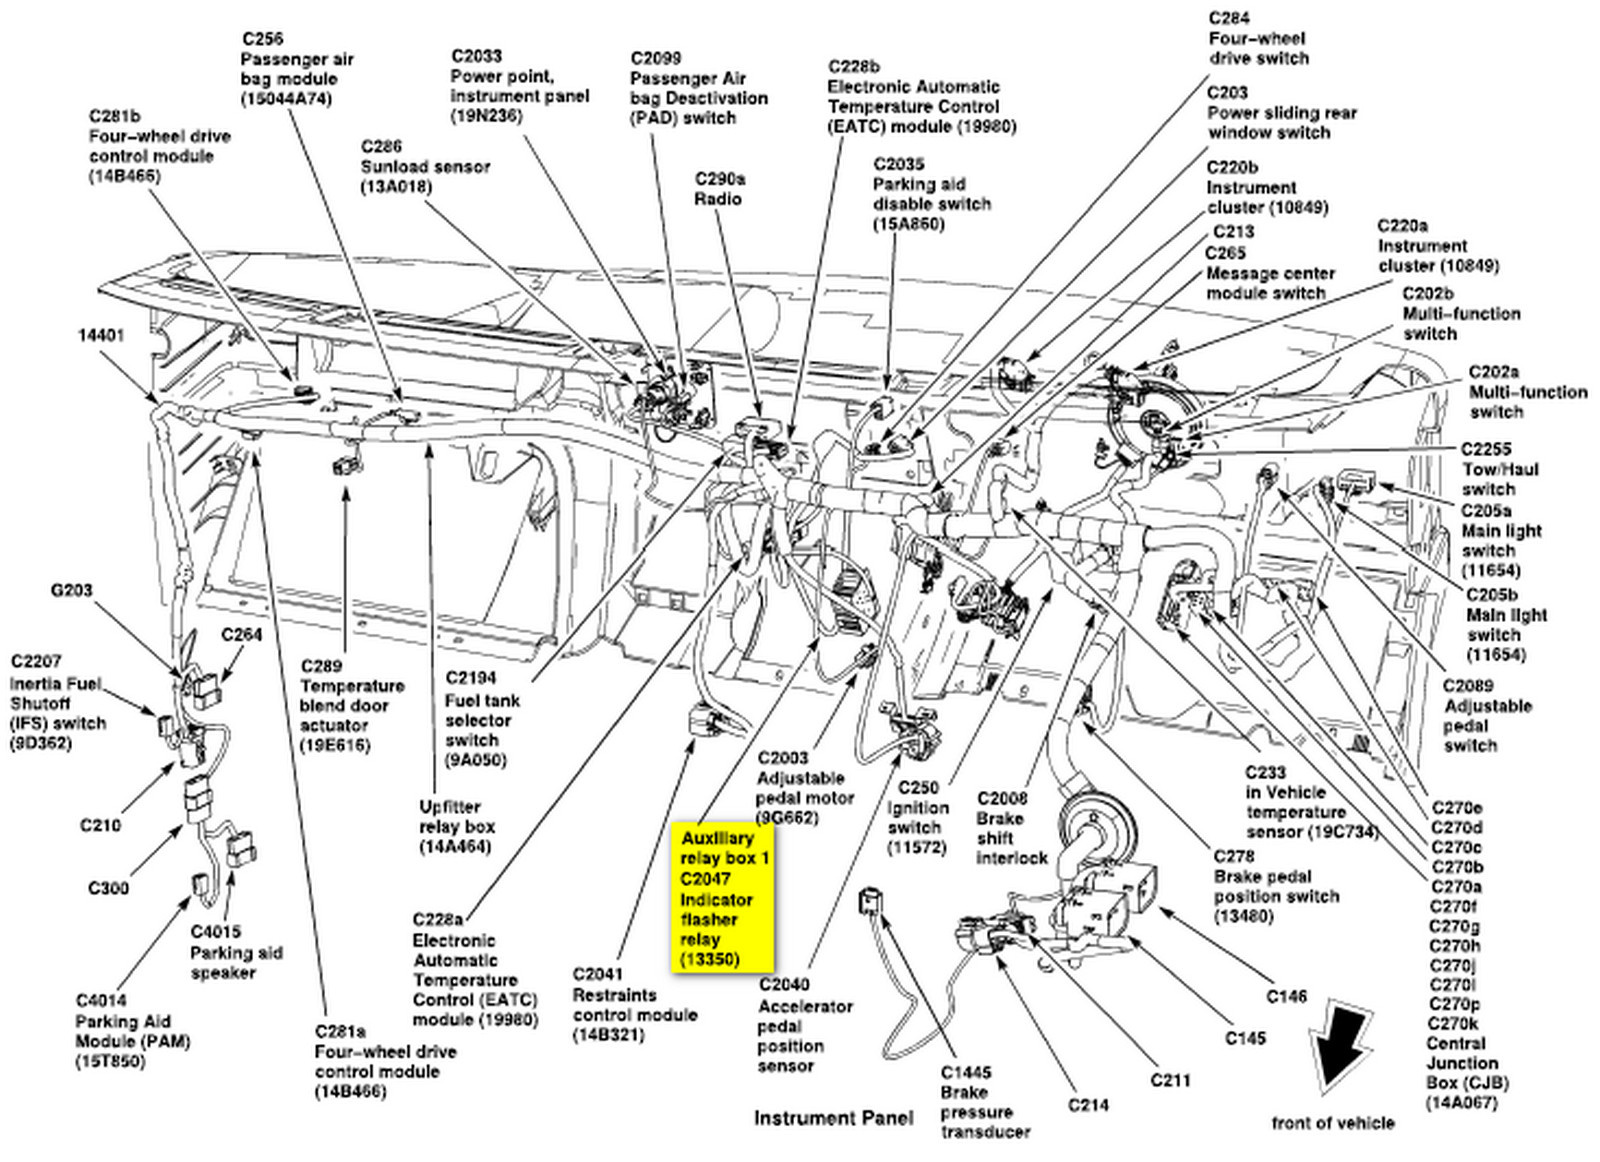 2000 kia sportage wiring with Discussion T60374 Ds560387 on 98 Honda Accord Front Suspension Diagram together with 3023933587 also 2006 Kia Sorento Crankshaft Position Sensor Location together with Hyundai Sonata Evap Wiring Diagram likewise Discussion T3983 ds688452.